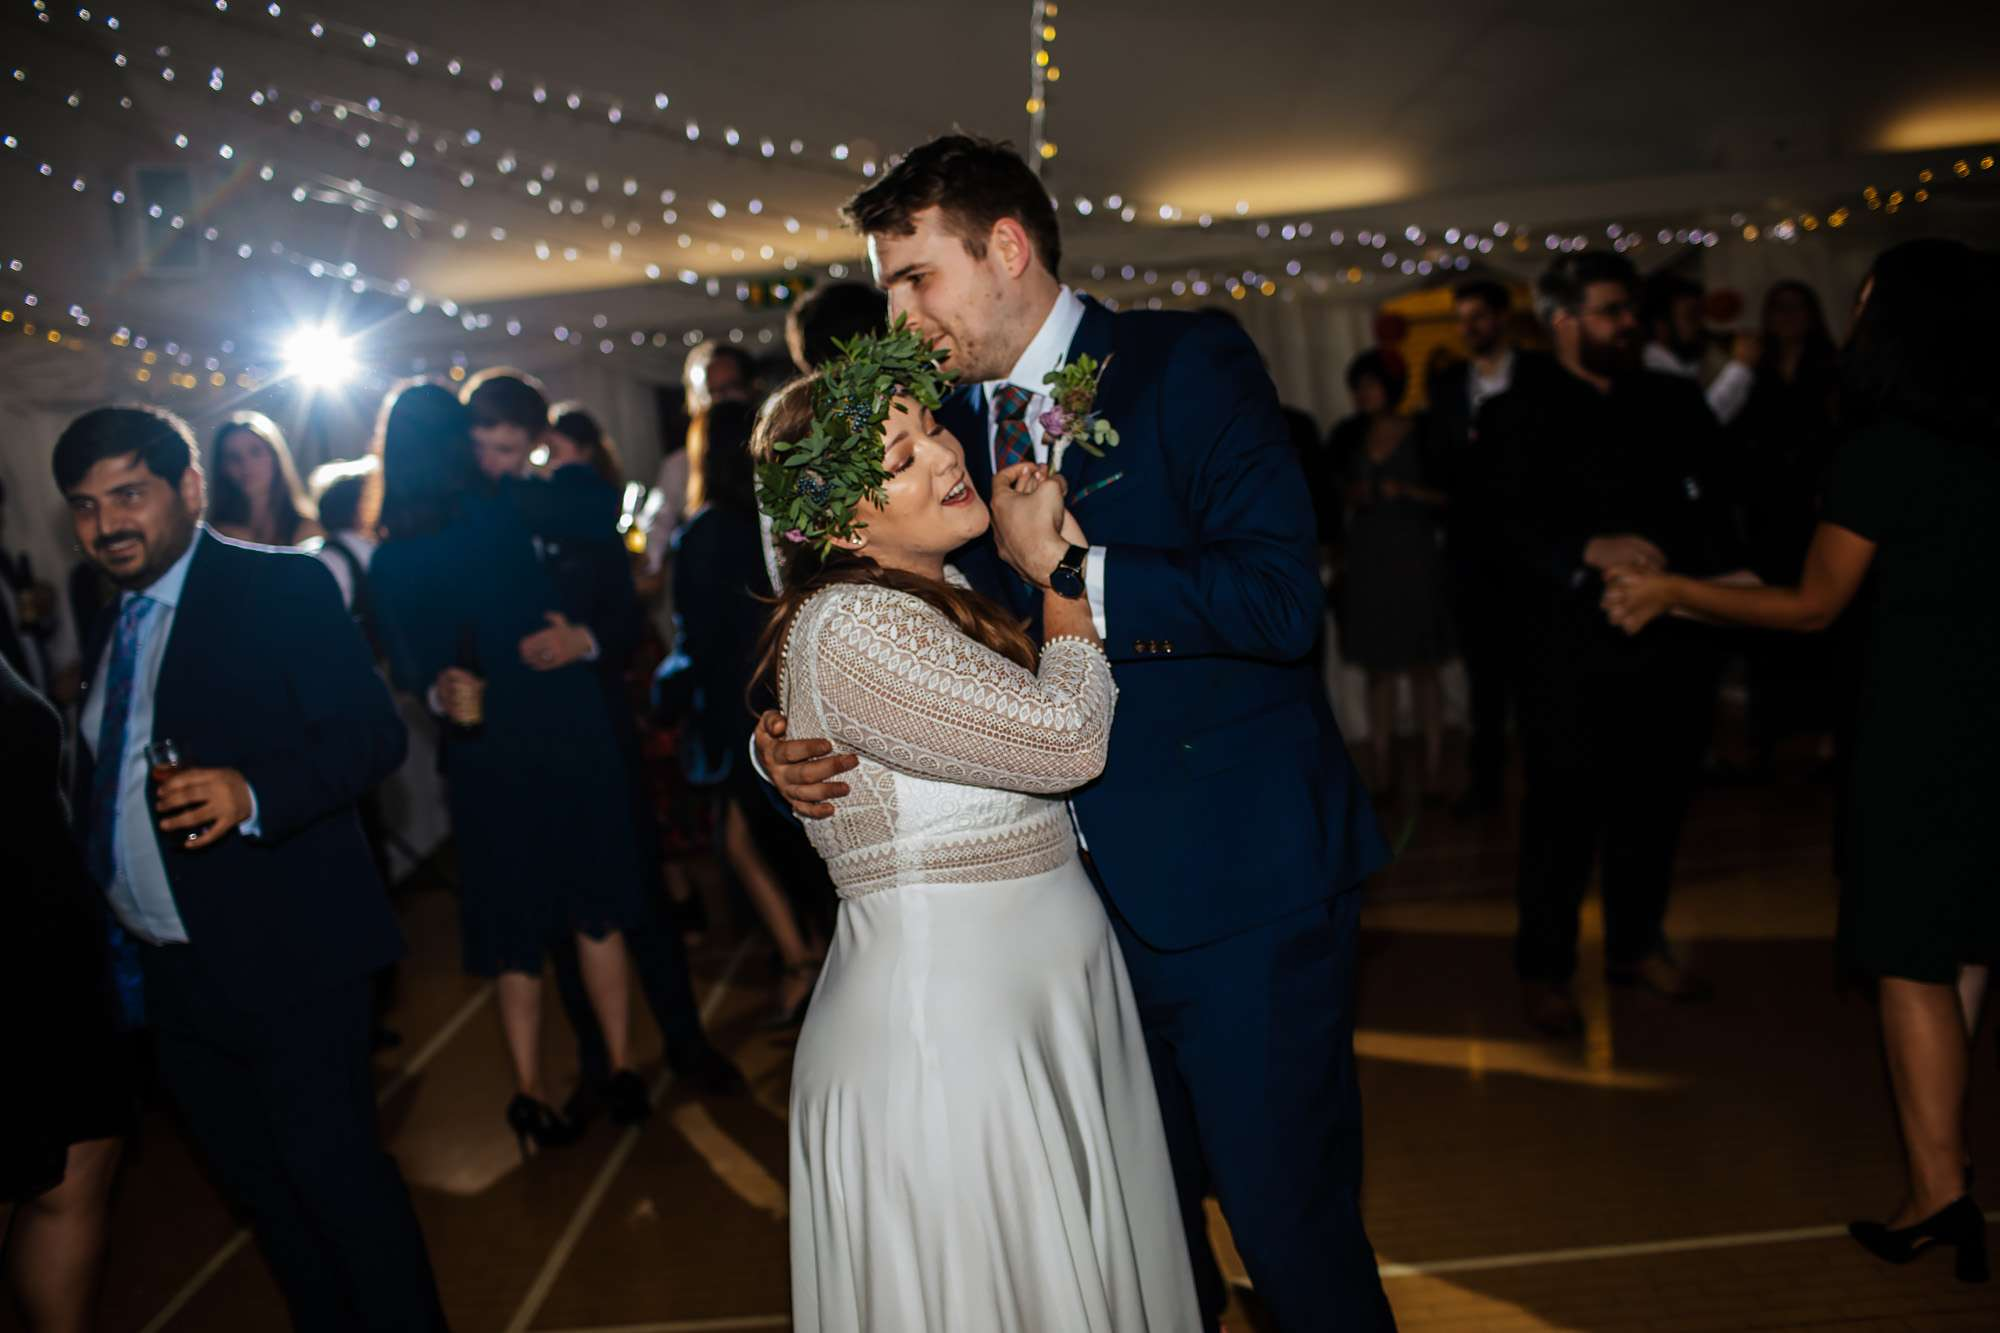 First dance at a wedding at East Keswick Village Hall